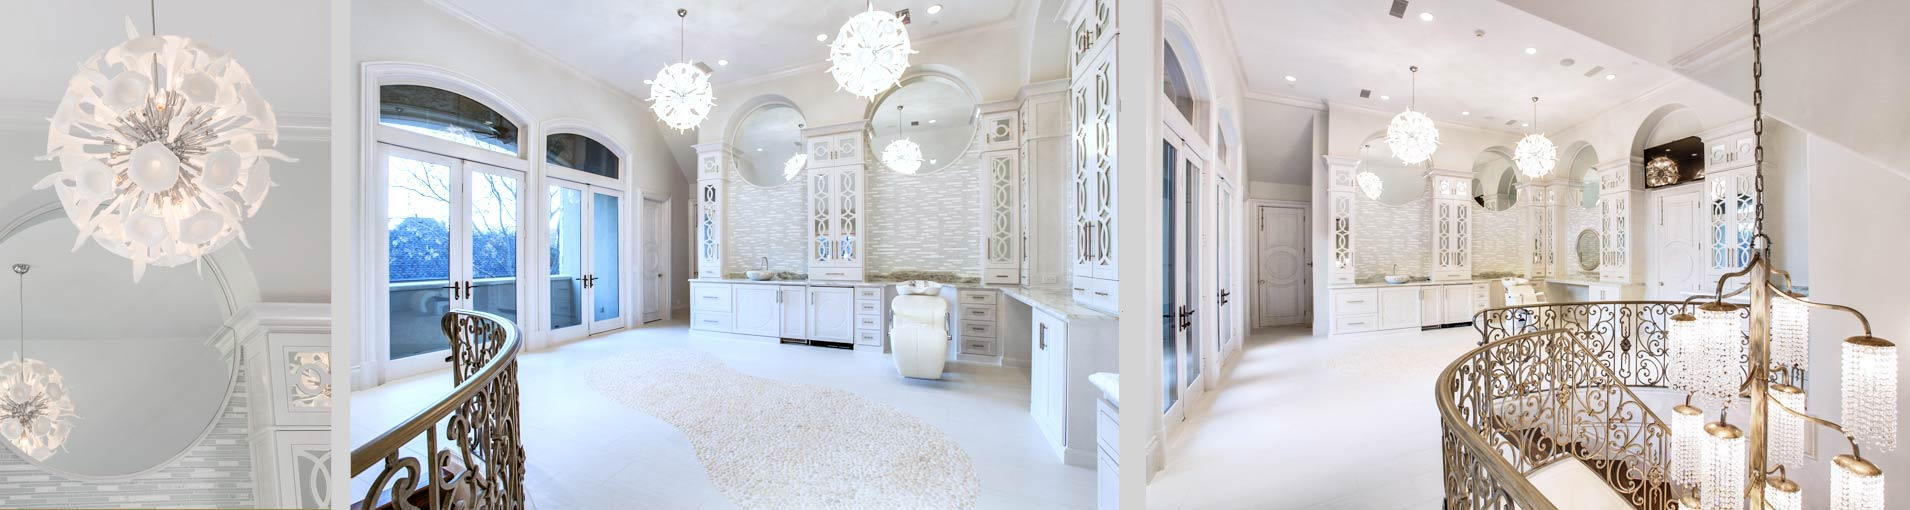 An exquisite spa remodel by Desco Homes of Dallas